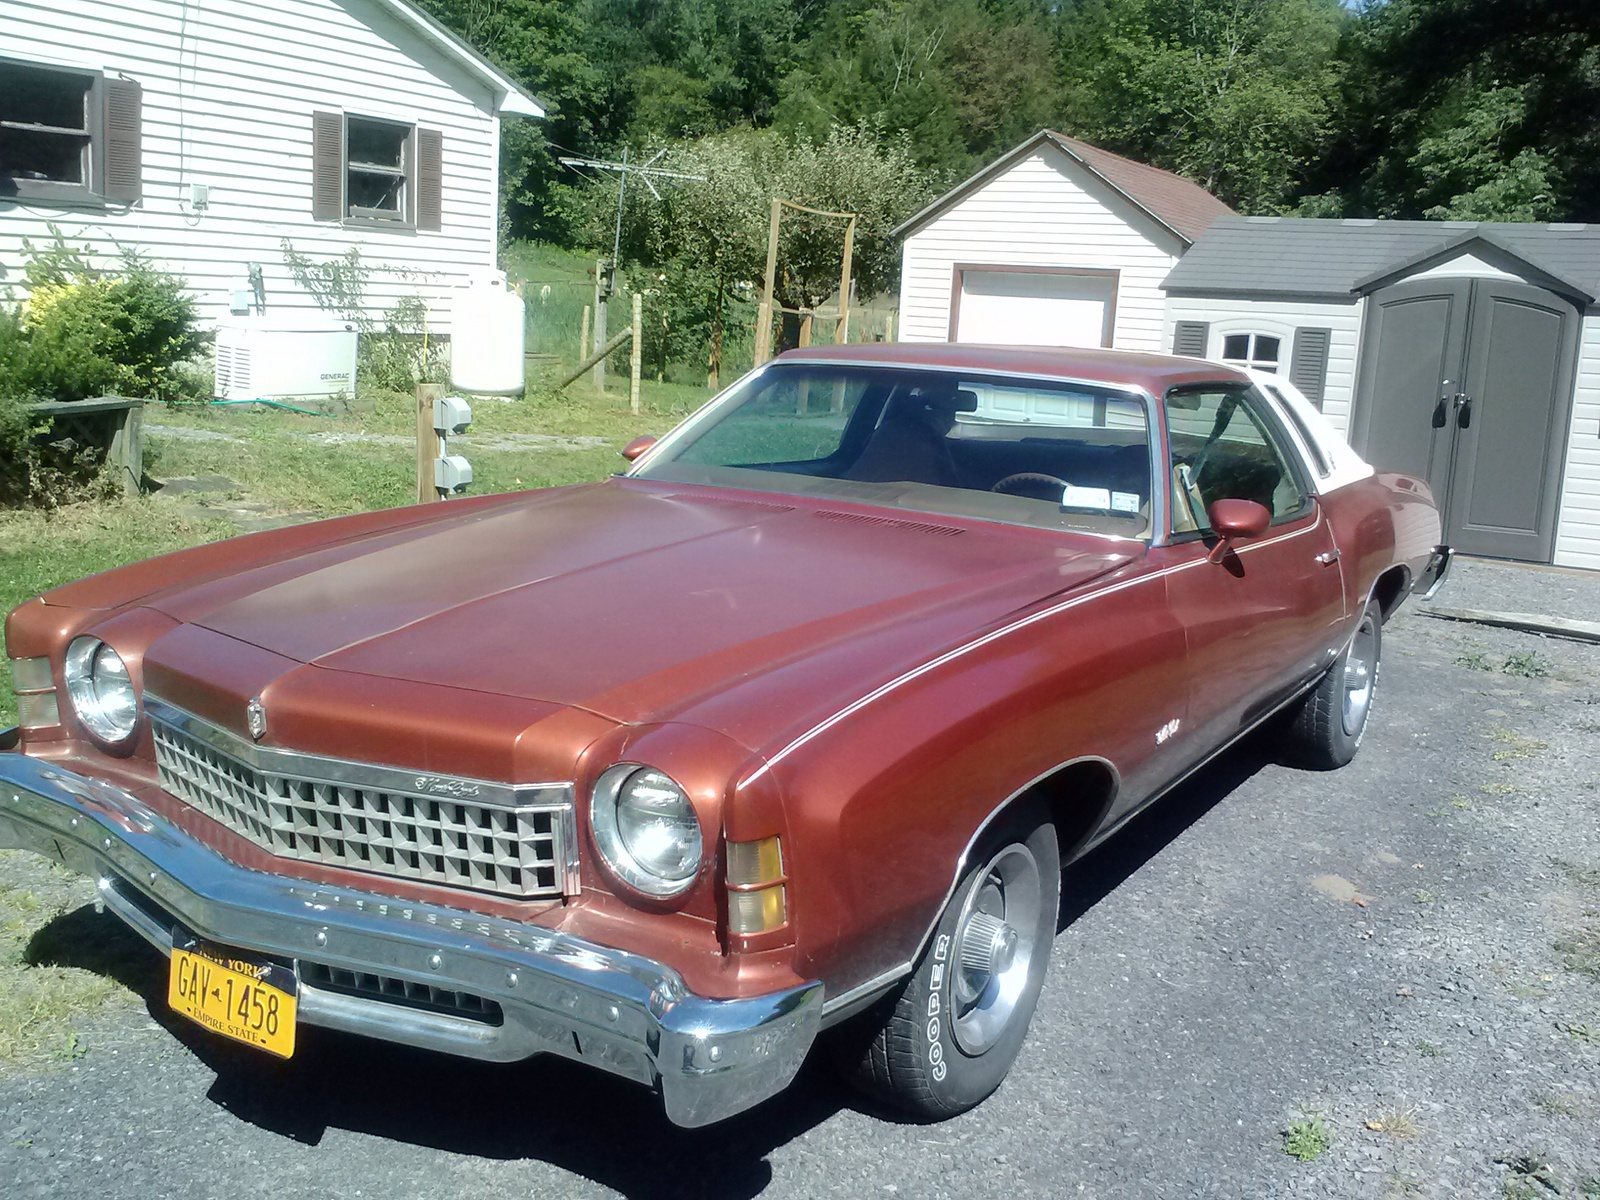 Vehicle 1176 Chevrolet Impala 1975 together with 1967 1973 Ford Mustang Crossmember besides 2000 Chevrolet Cavalier Pictures C887 pi35669421 likewise Engine Hesitates in addition Watch. on used 2005 chevy impala